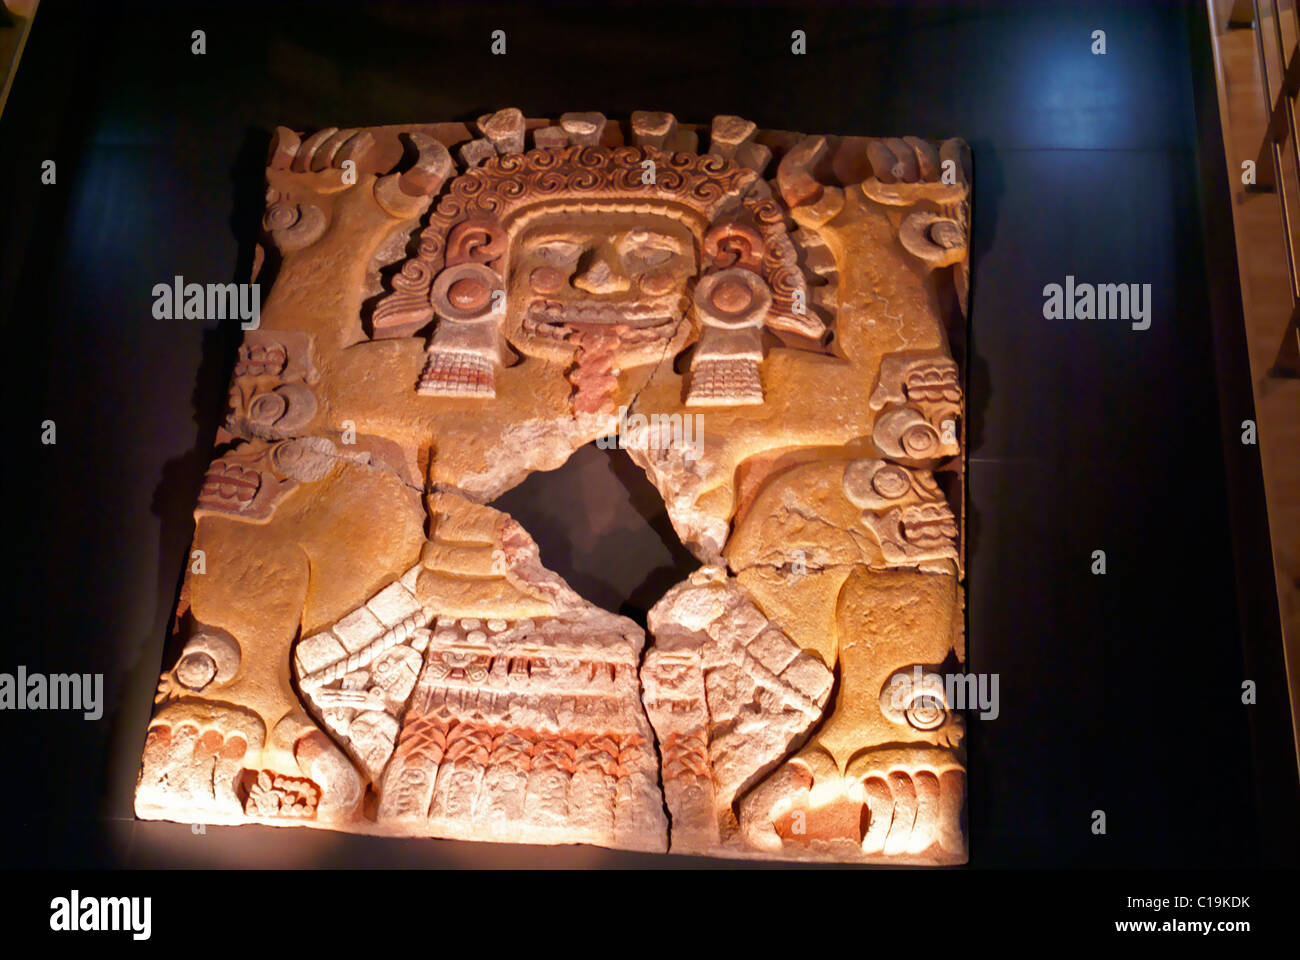 The Tlaltecuhtli sculpture in the Templo Mayor Museum, Mexico City - Stock Image